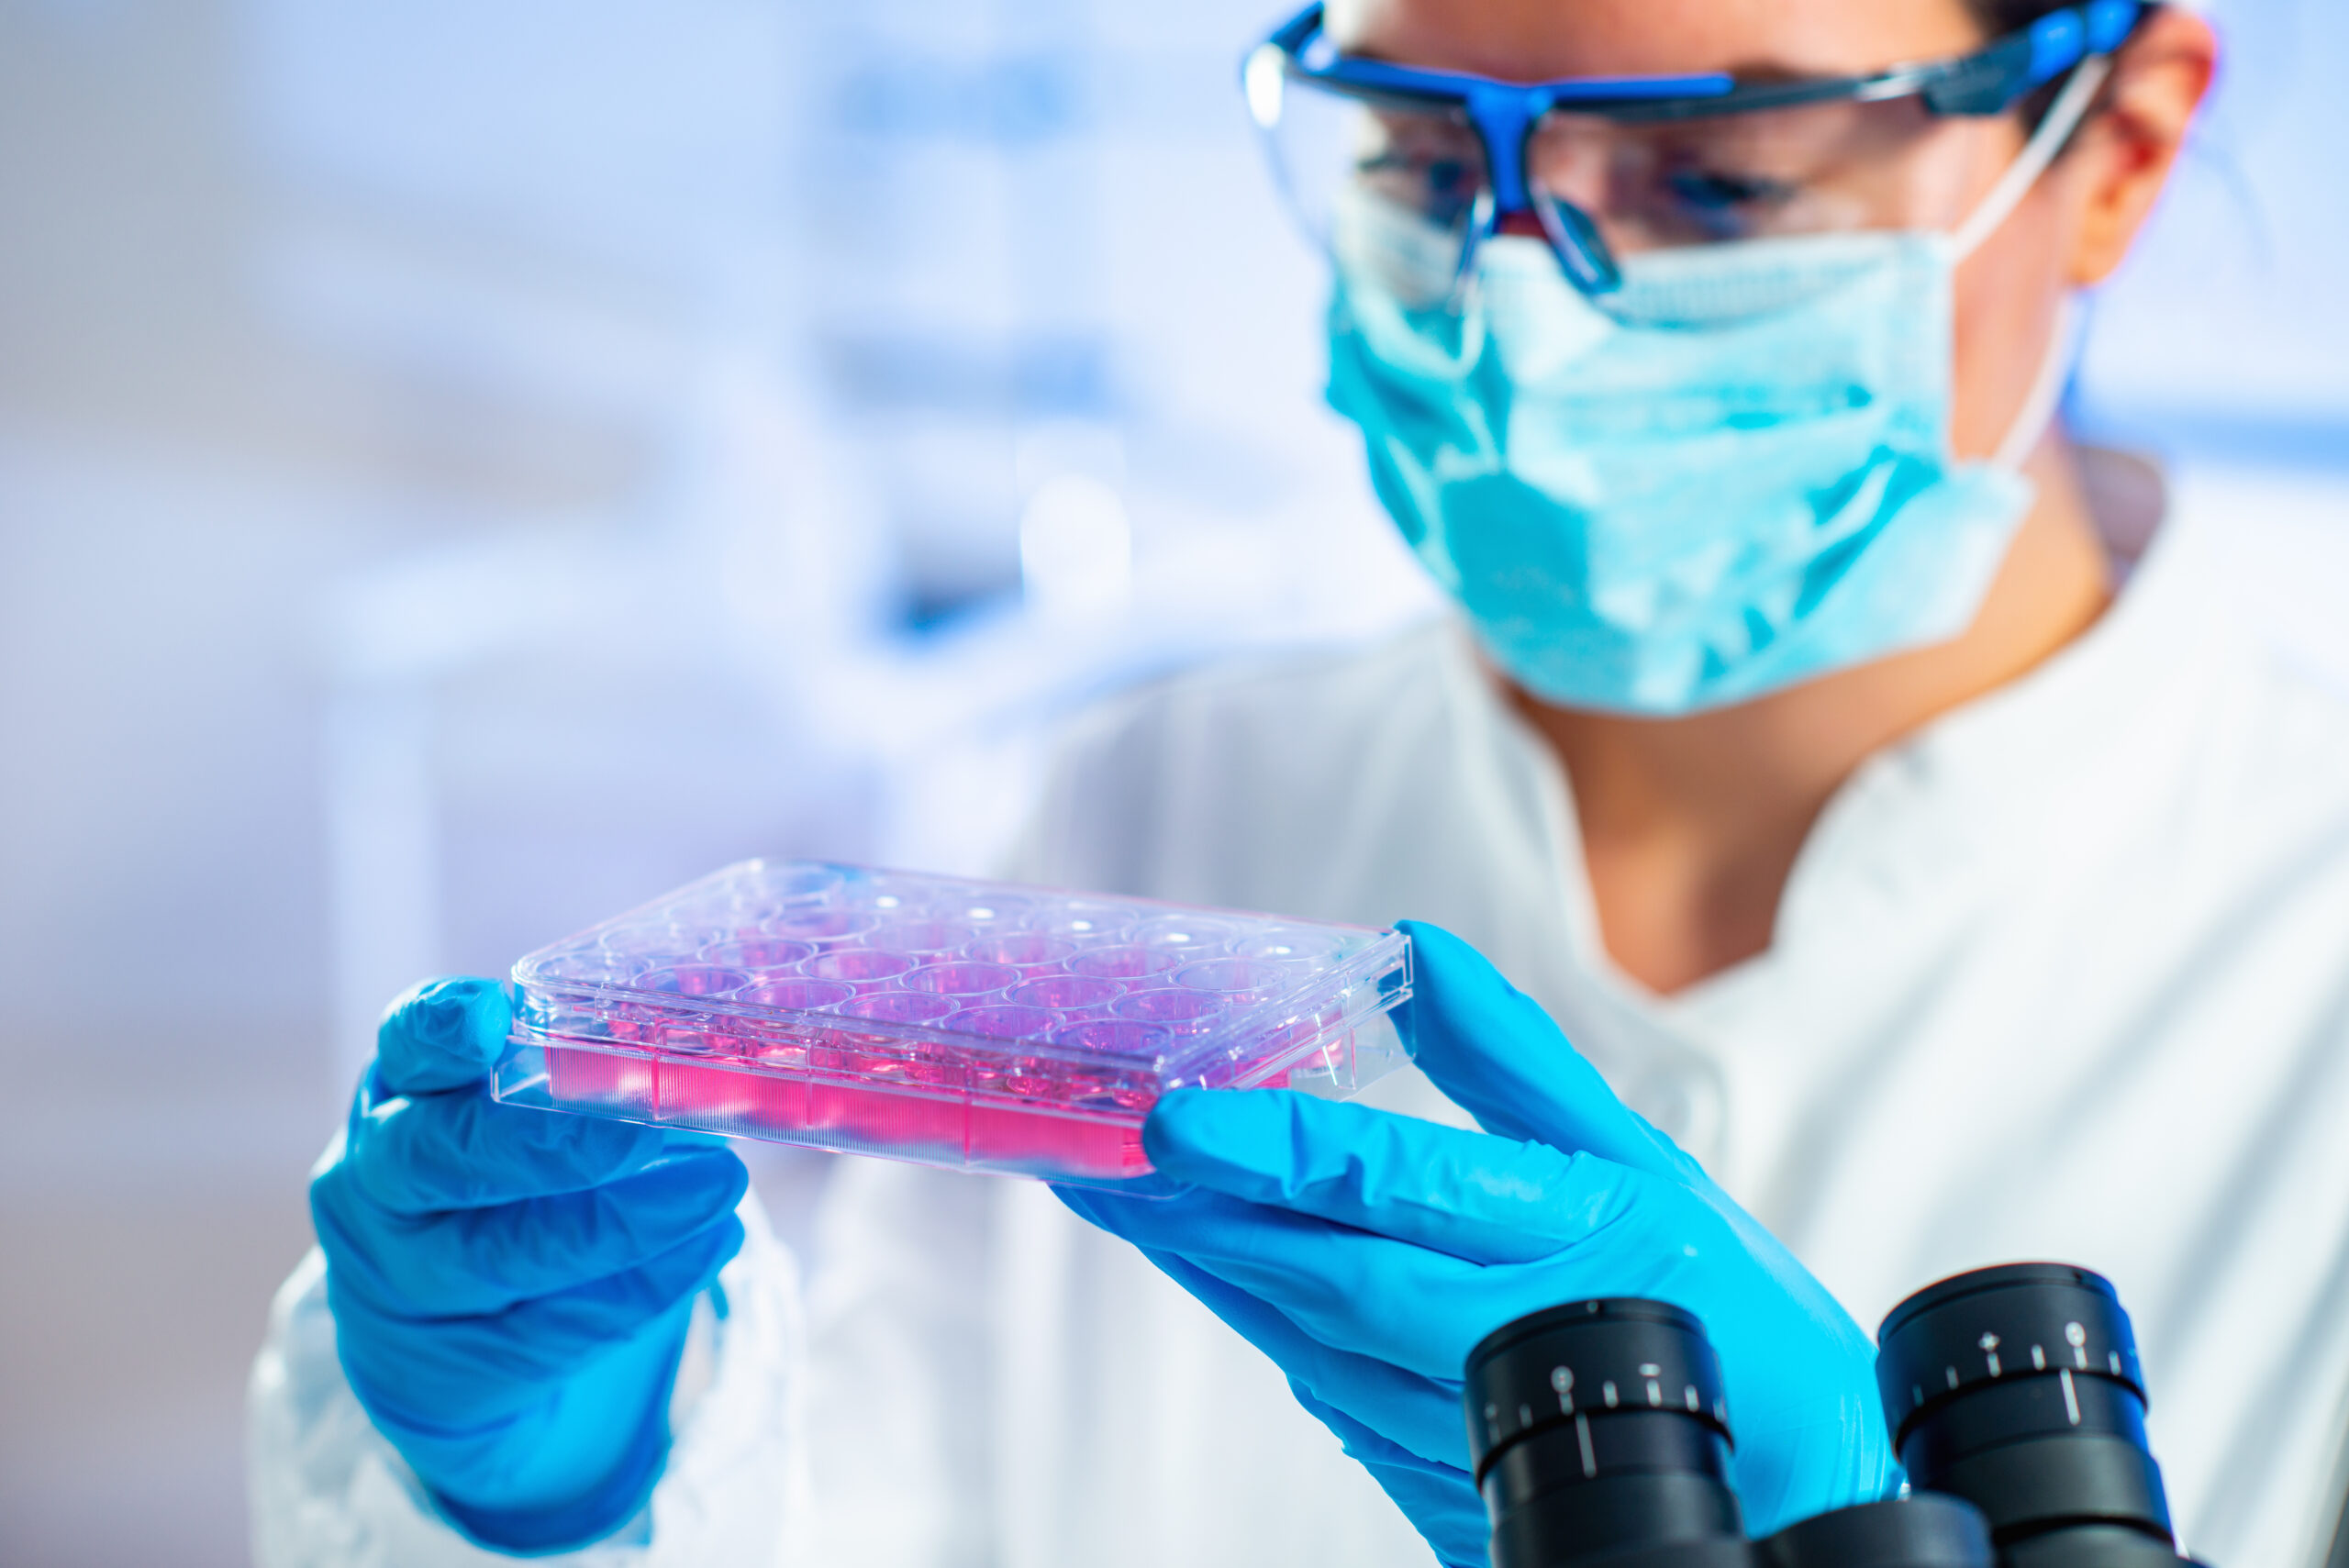 Stem Cell and Blood Platelet Procedures offer a viable alternative for individuals who are suffering from joint pain, or who may be considering elective surgery or joint replacement due to injury or arthritis. Patients avoid the lengthy periods of downtime, and painful rehabilitation that typically follow invasive surgeries.